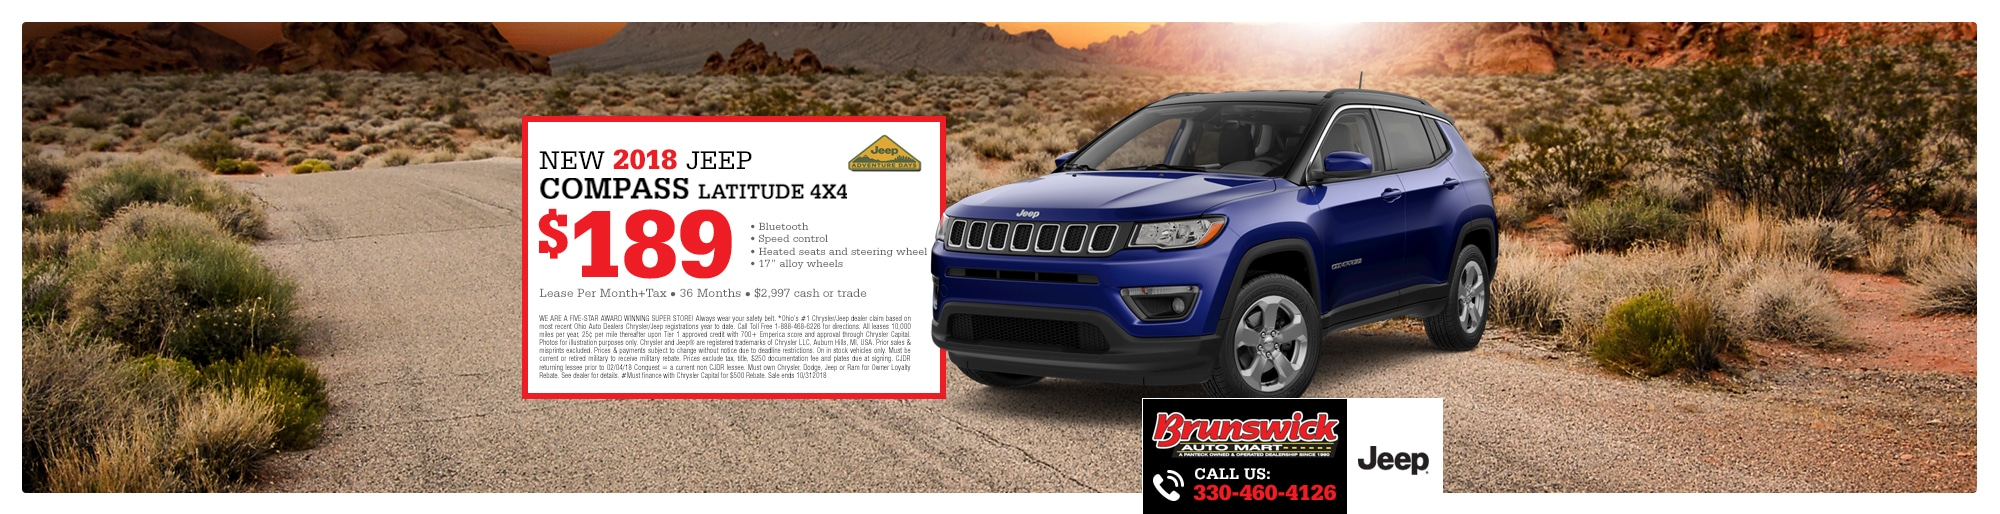 2018 Jeep Compass Special - Lease For $189 A Month For 36 Months With $2,997 Due At Signing